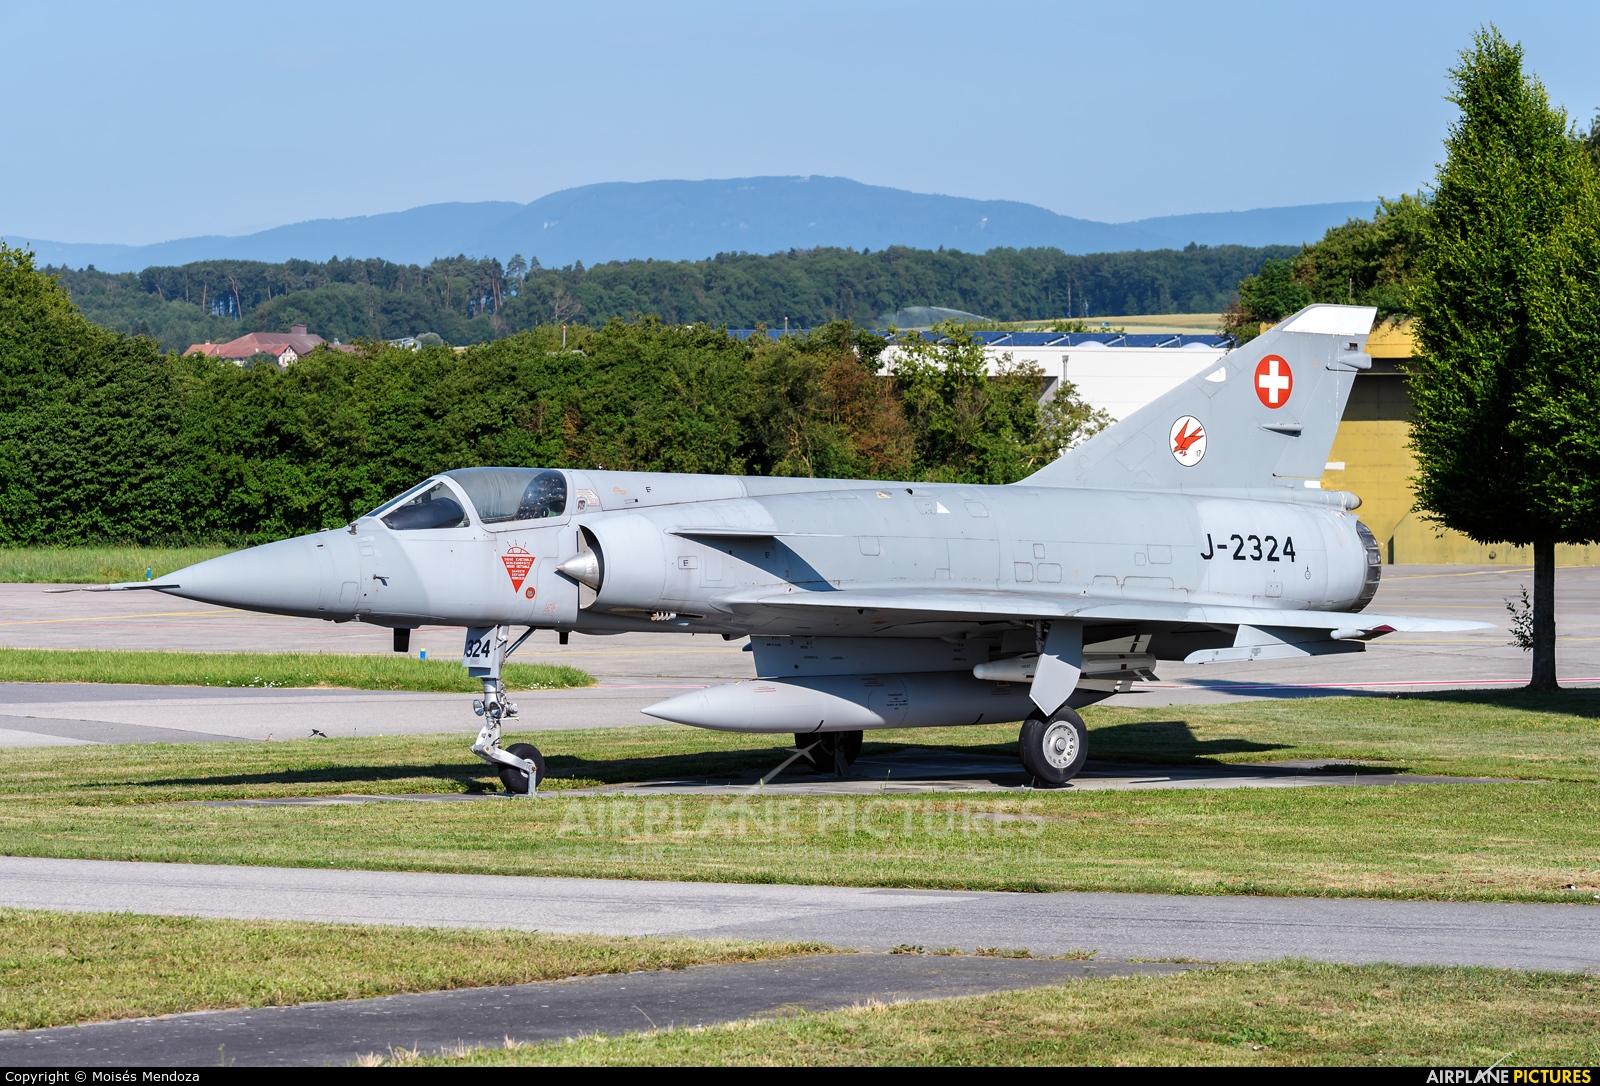 Switzerland - Air Force J-2324 aircraft at Payerne